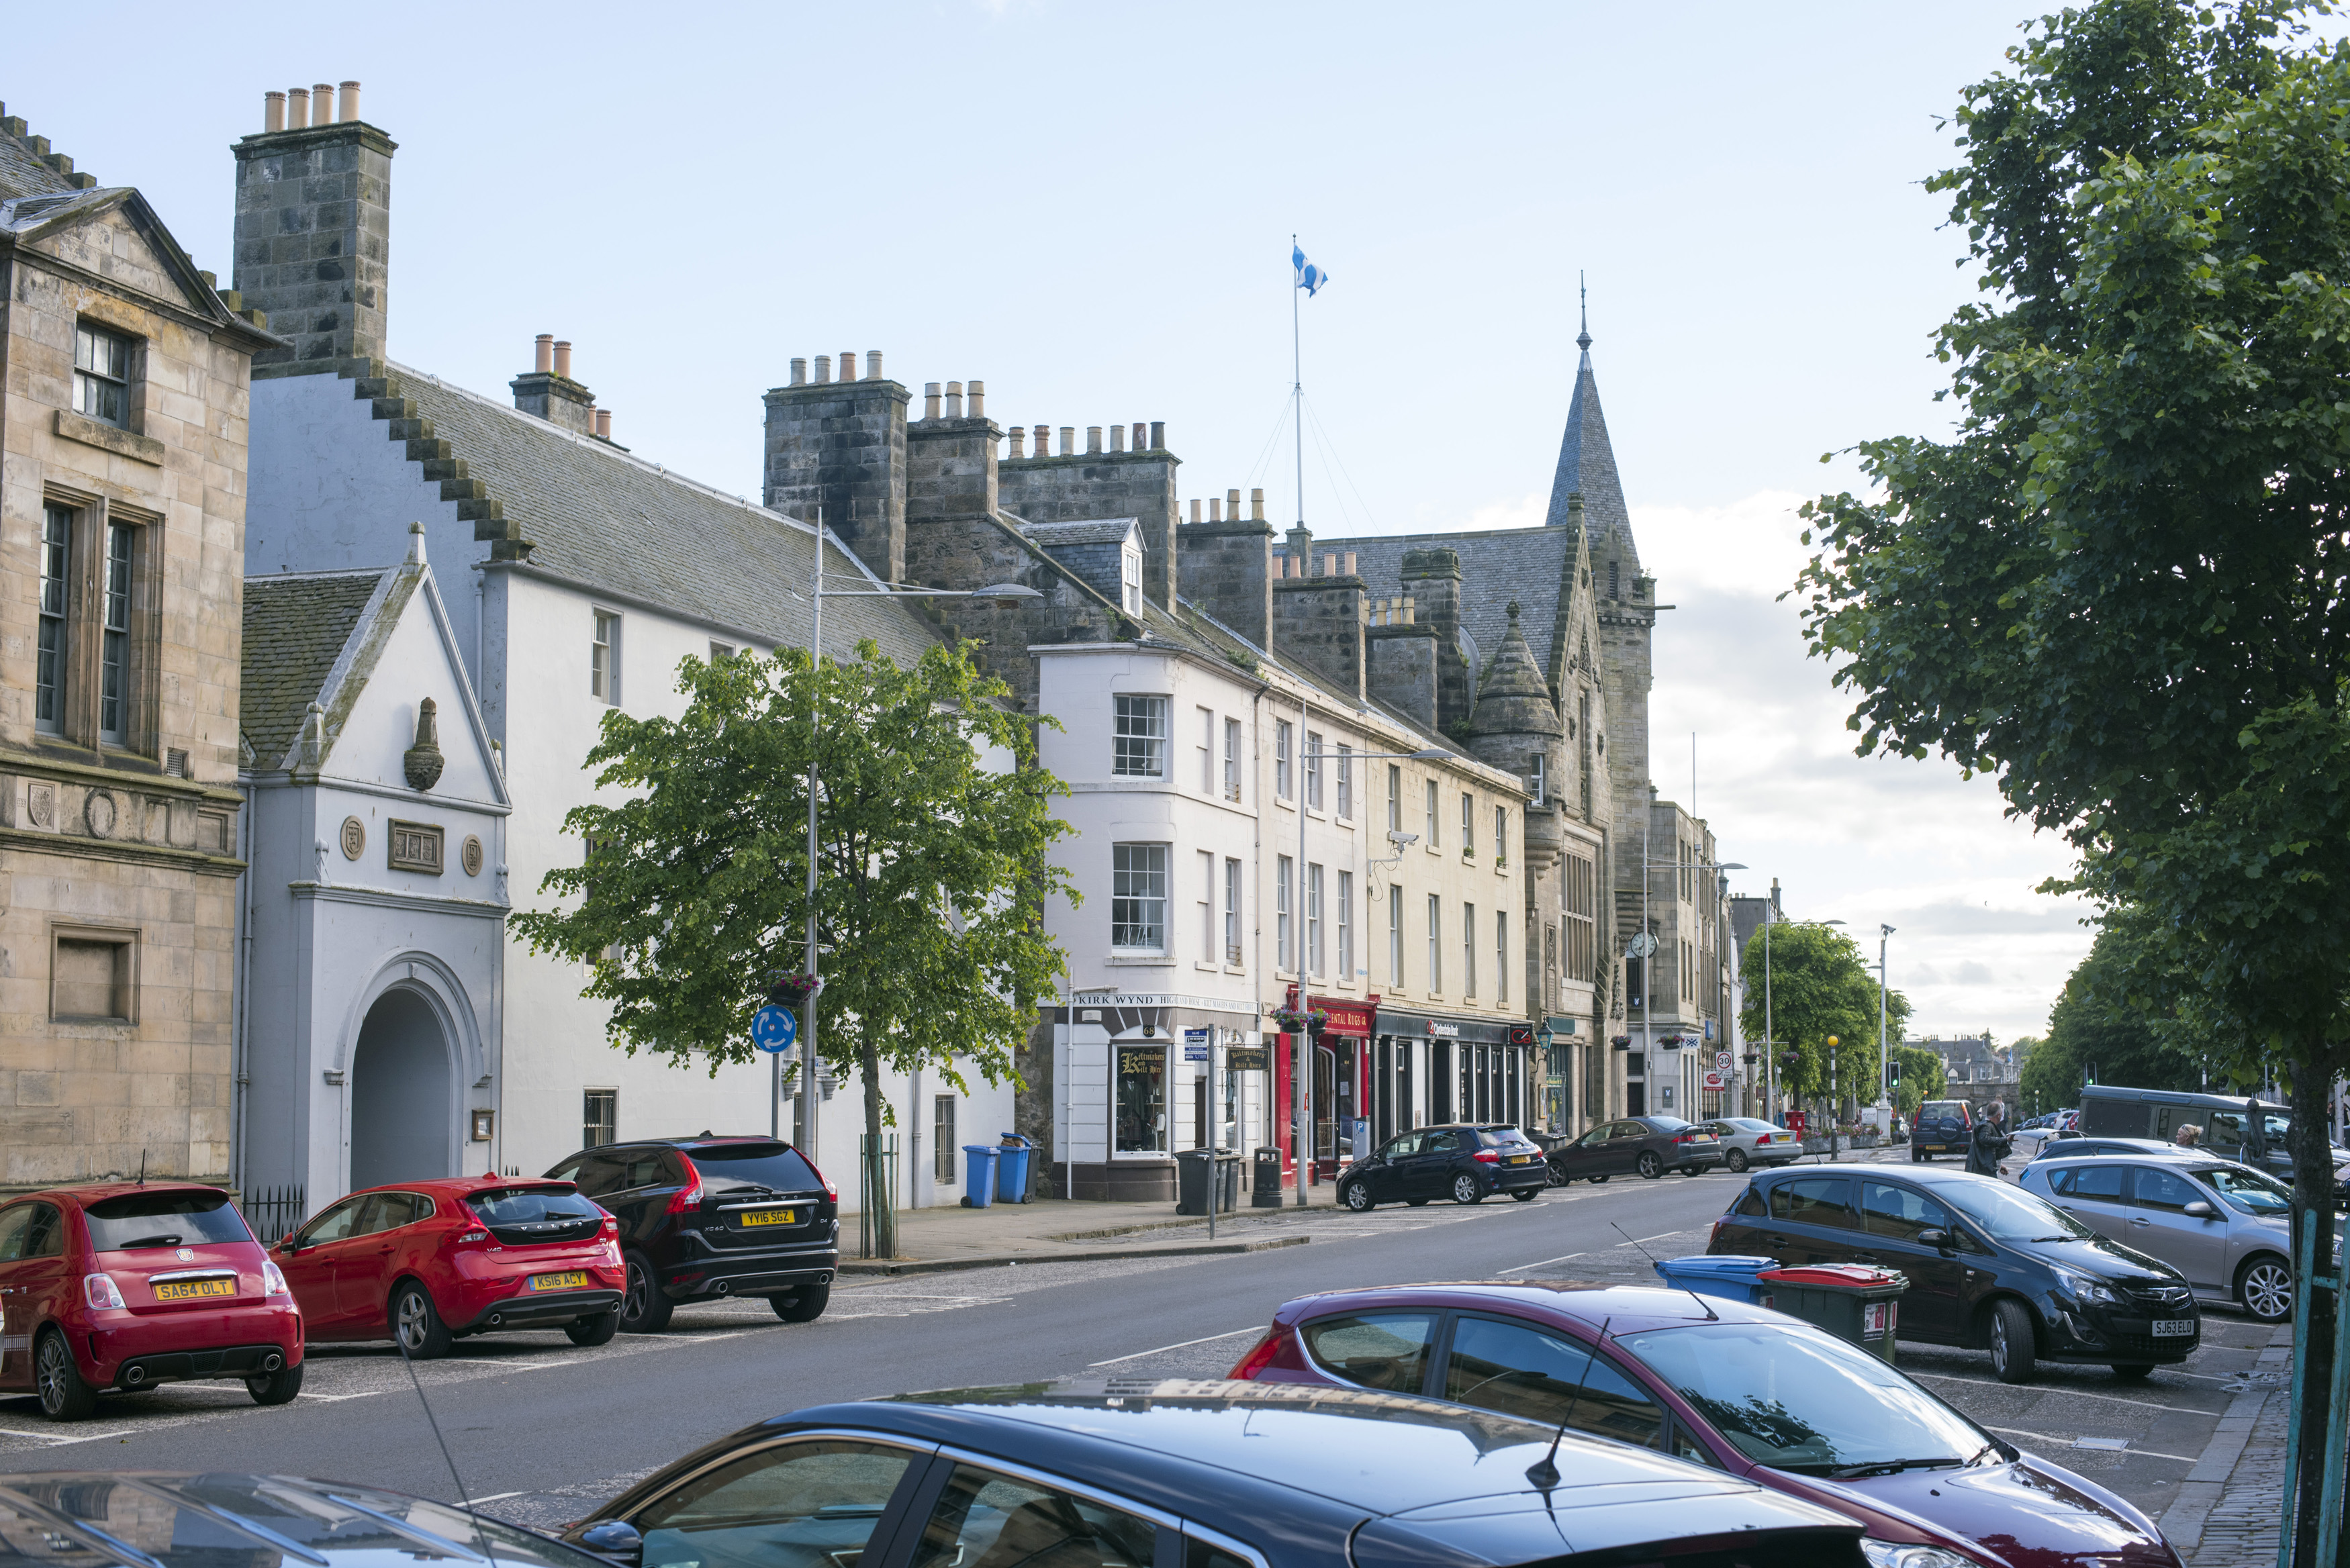 Street scene in St Andrews, Scotland with rows of parked cars in front of historic buildings on a quiet sunny day